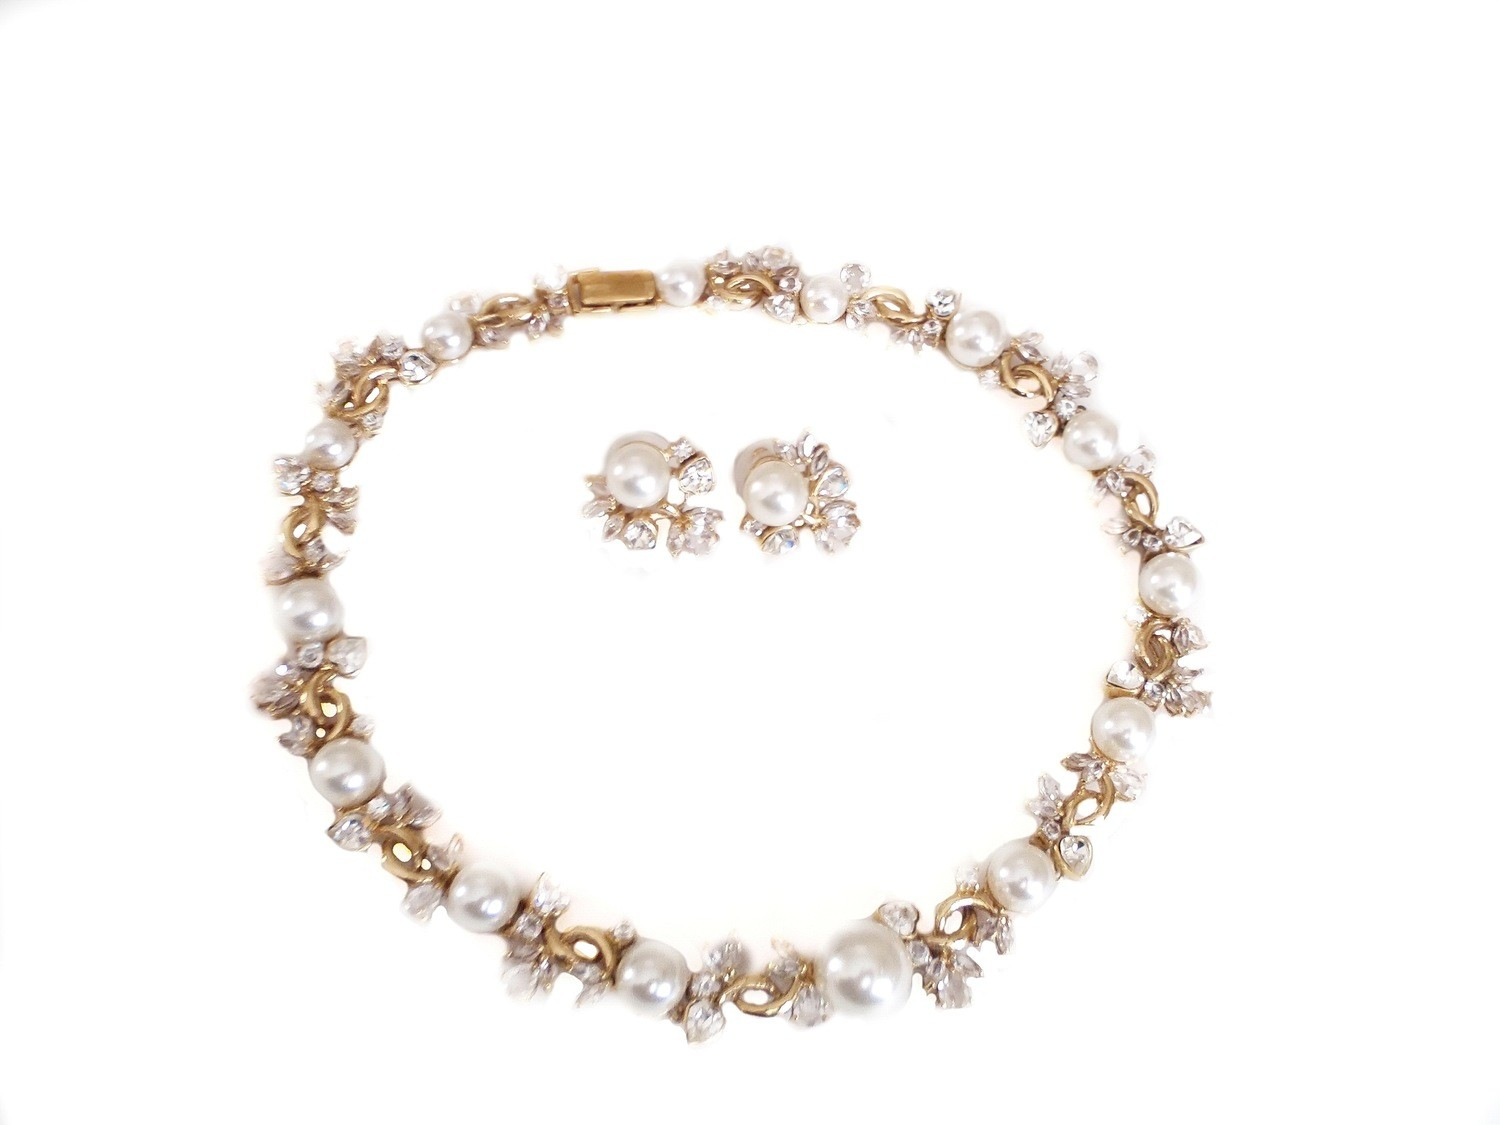 Heart Crystals Pearls Necklace Earrings Set Bridal Wedding Choker